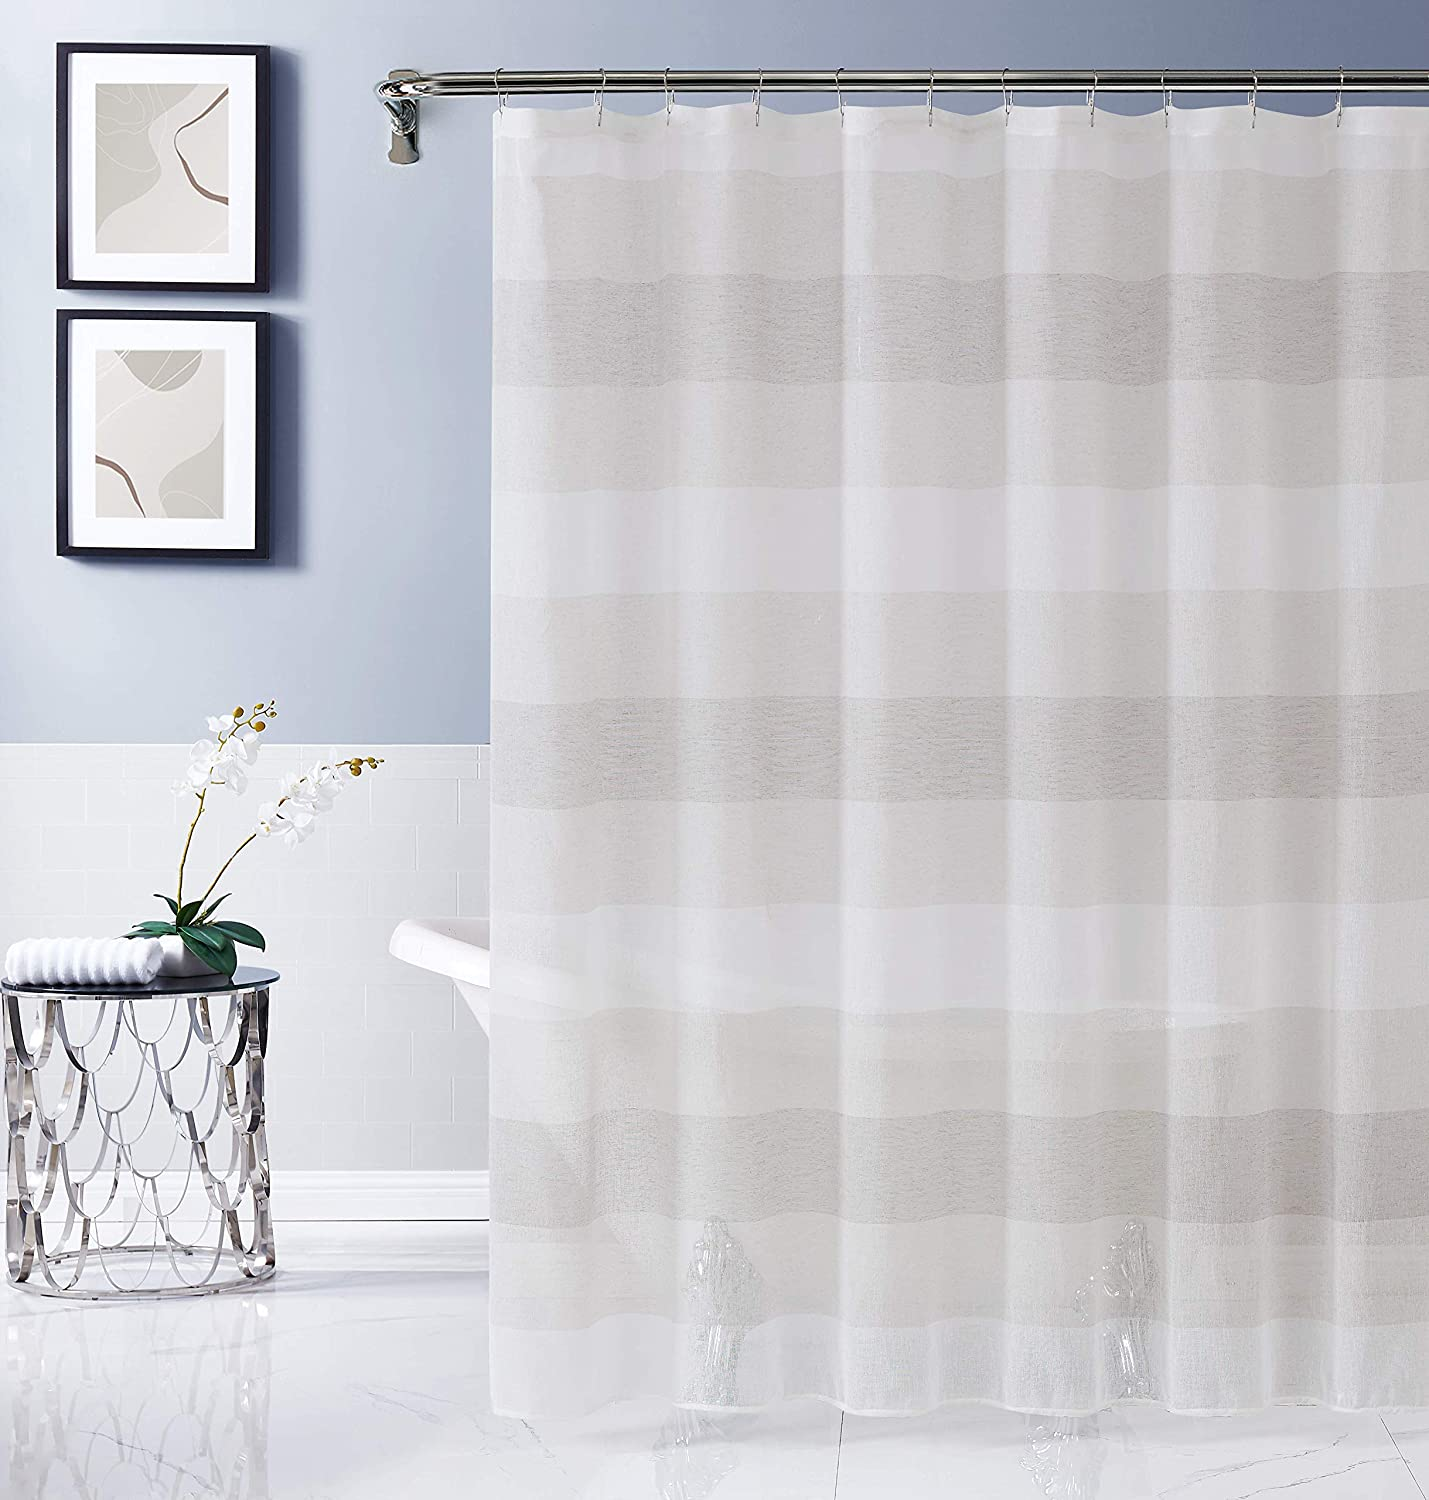 Dainty Home CHELSSCLI Fabric Shower Curtain, Linen